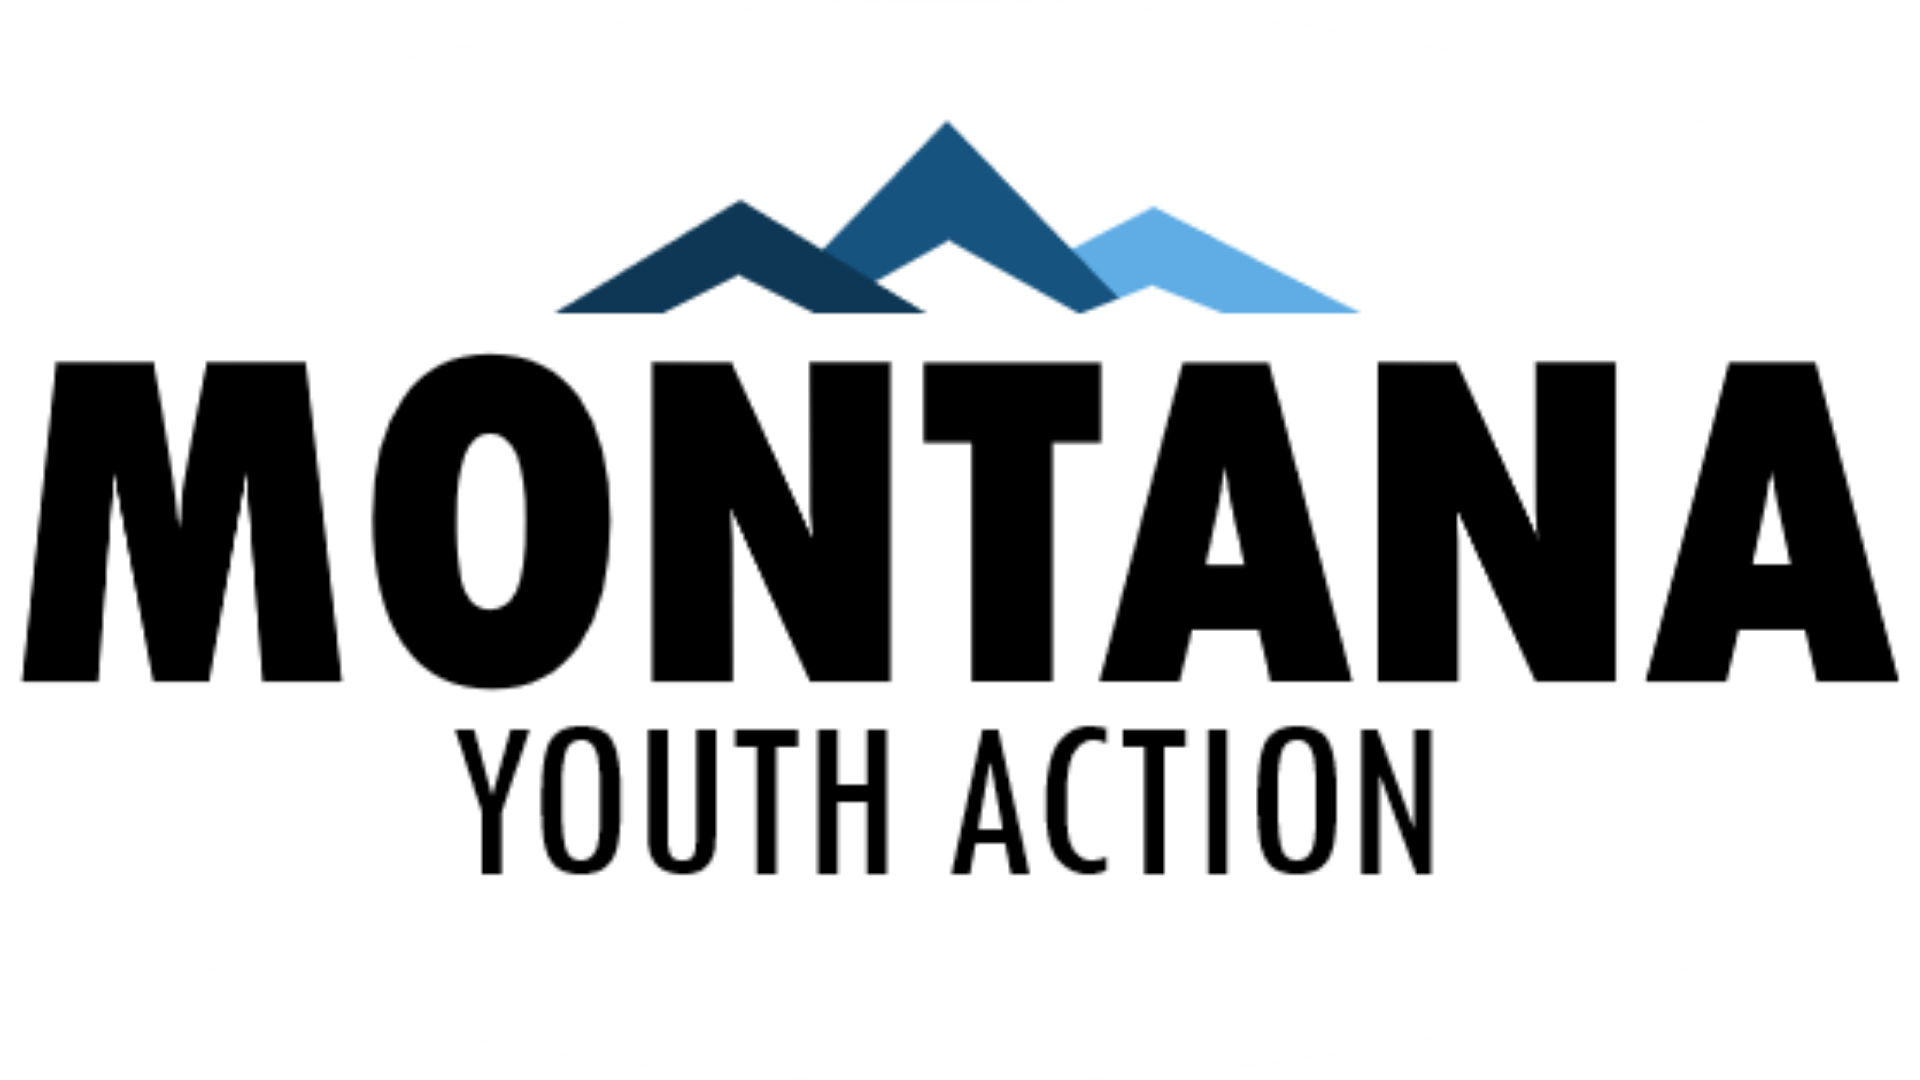 Montana Youth Action